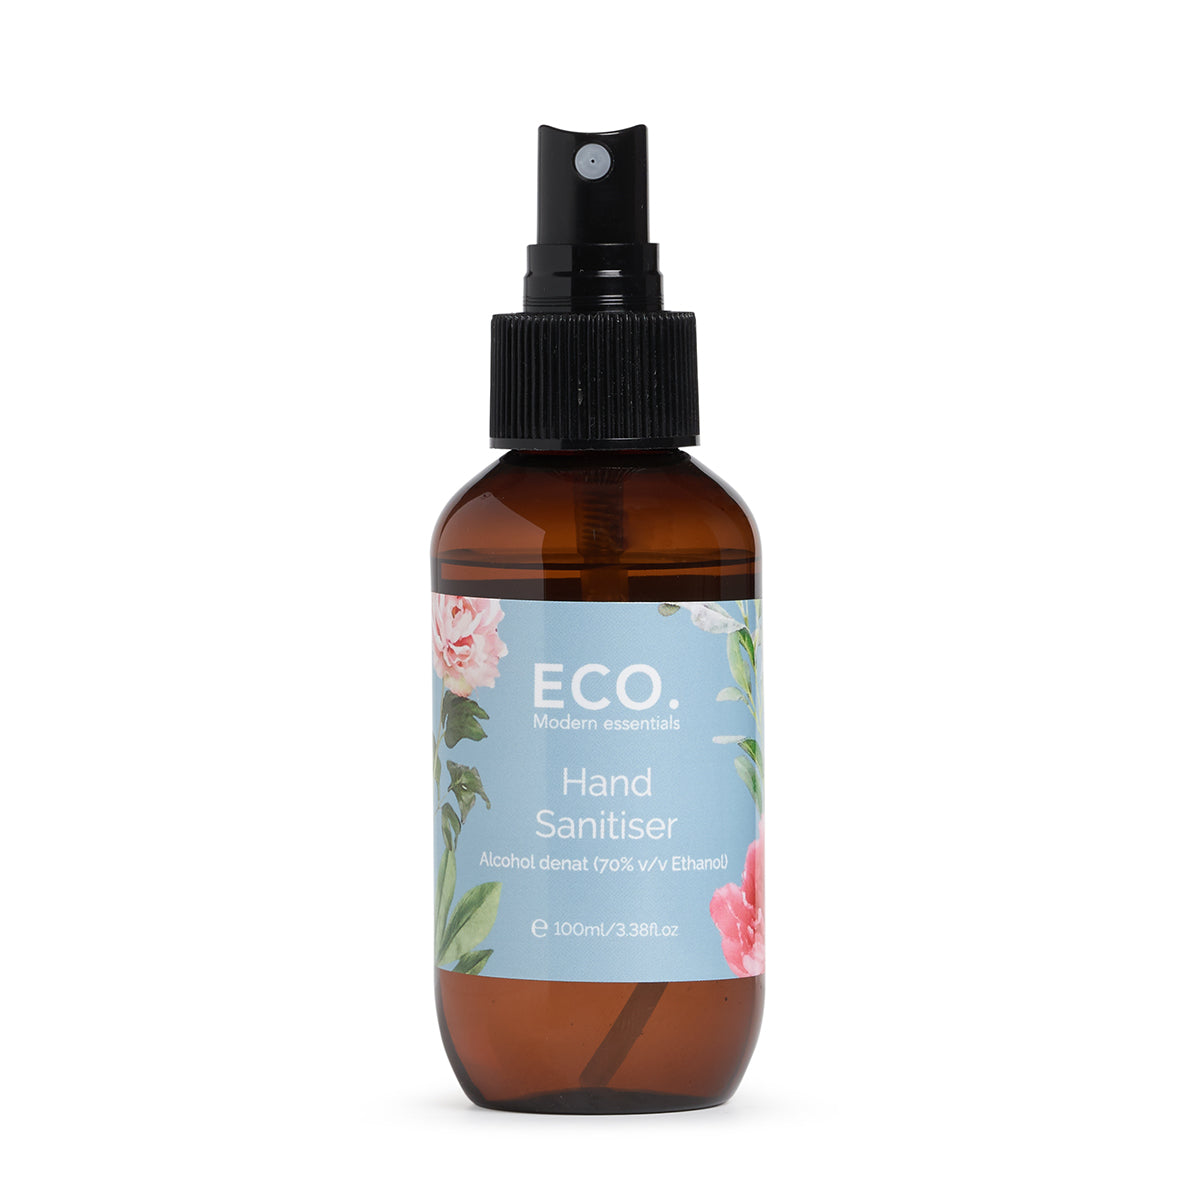 Hand Sanitiser calm earth co eco modern essentials